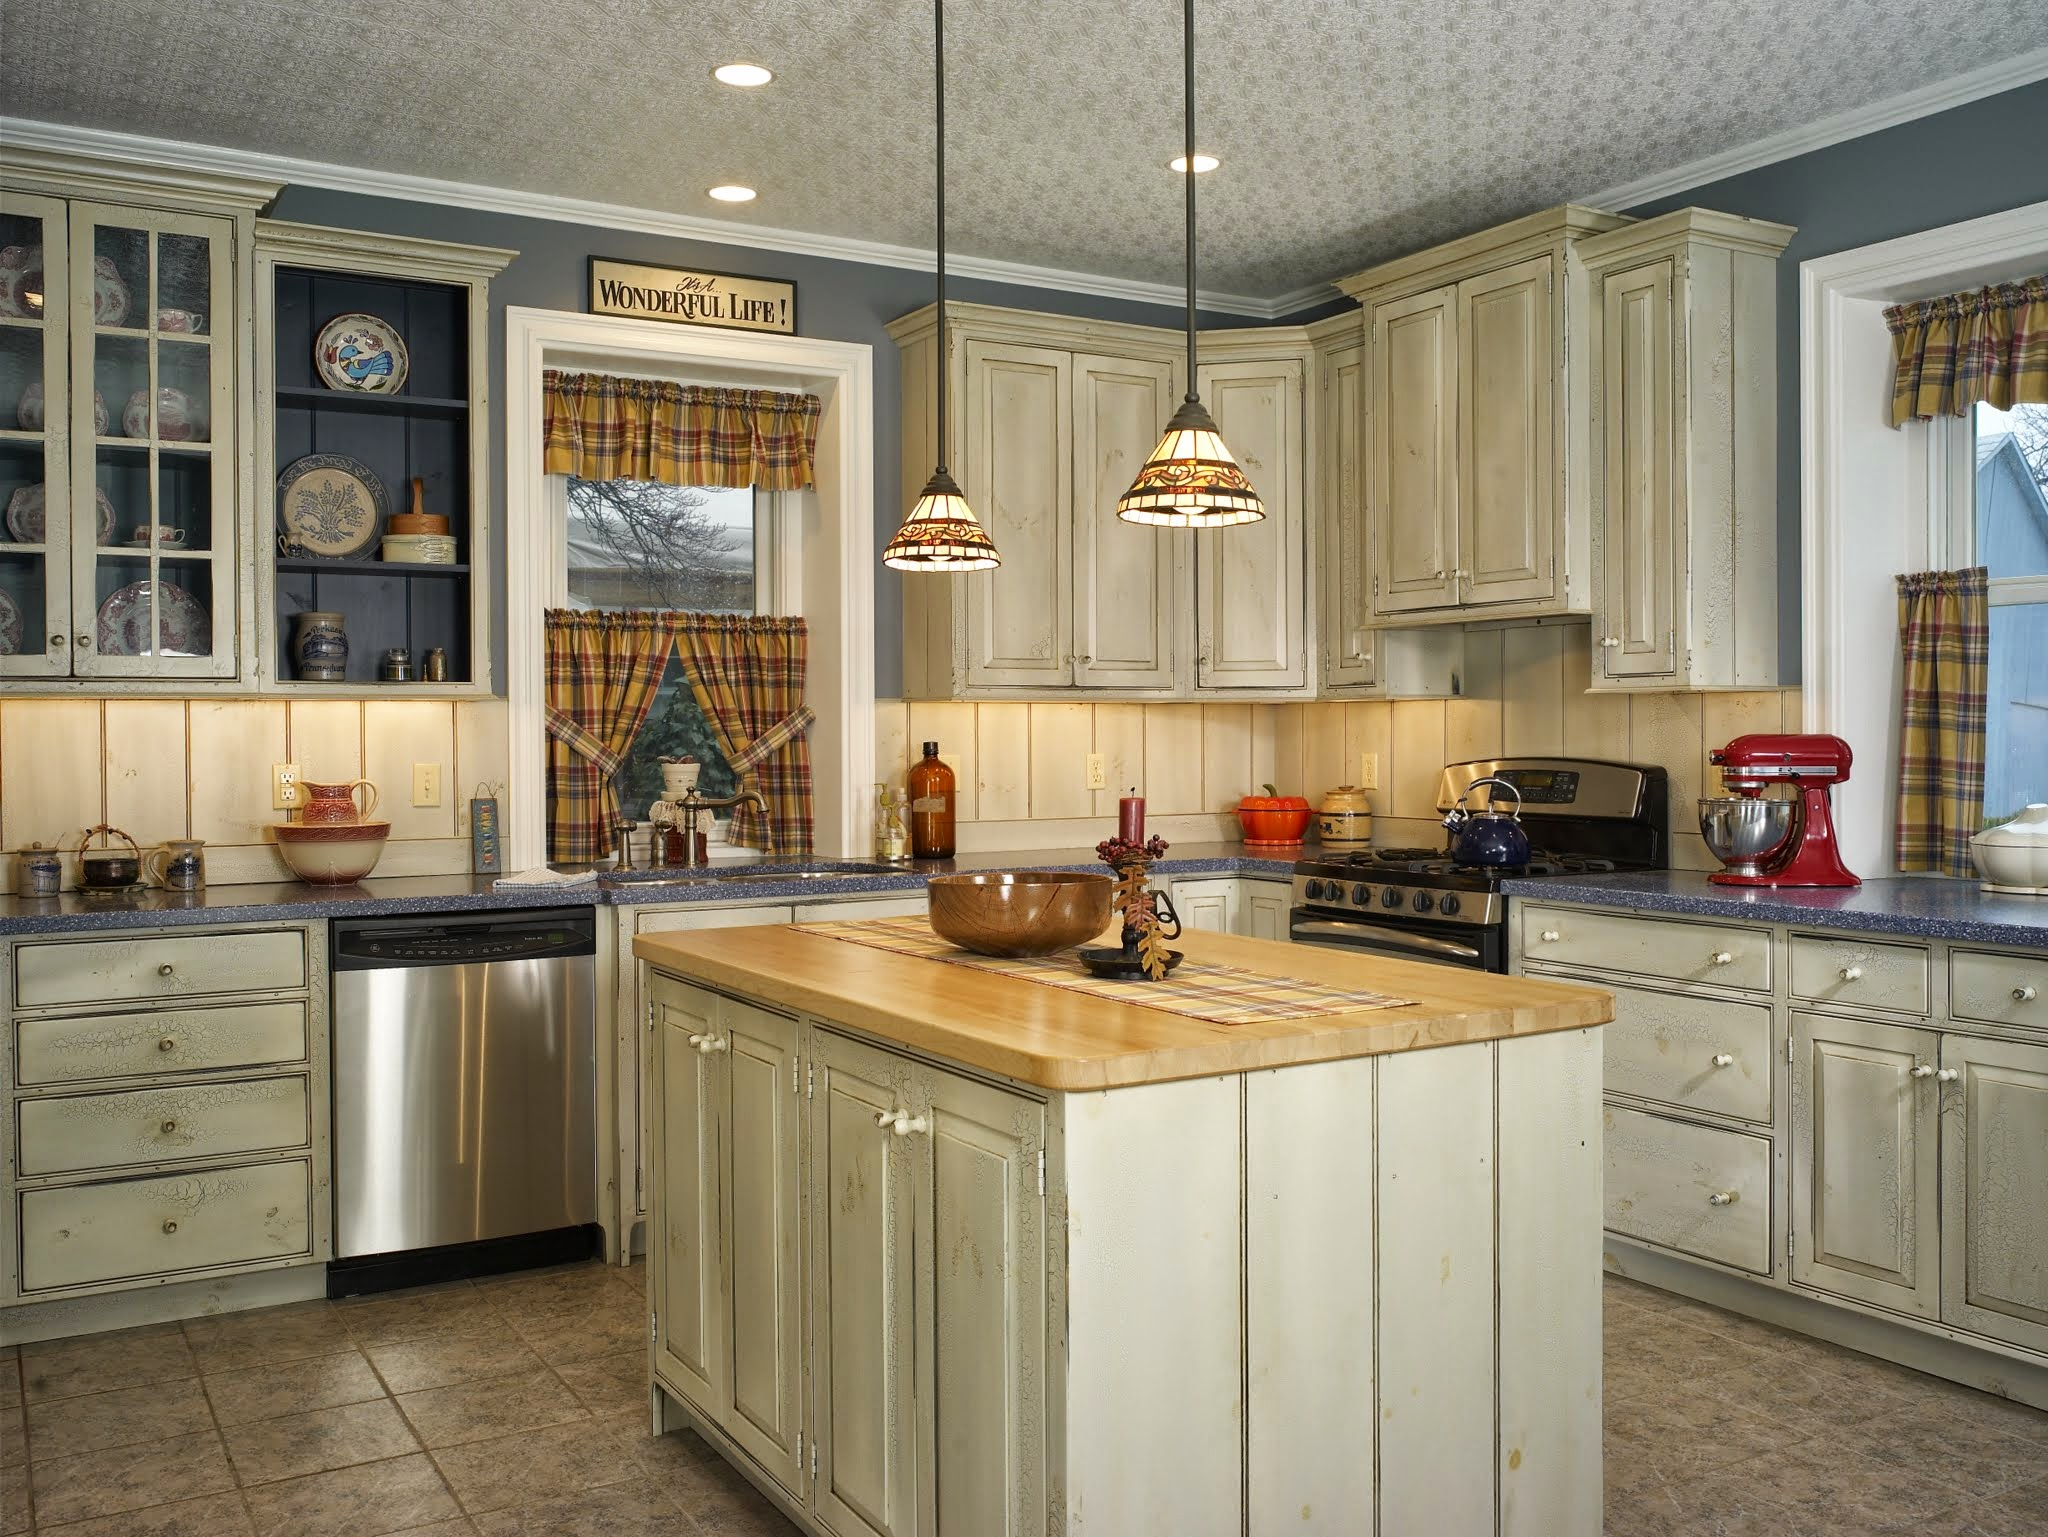 Picasa - Kitchen Renovation using Roger Wright Furniture cabinets, Corian and wo